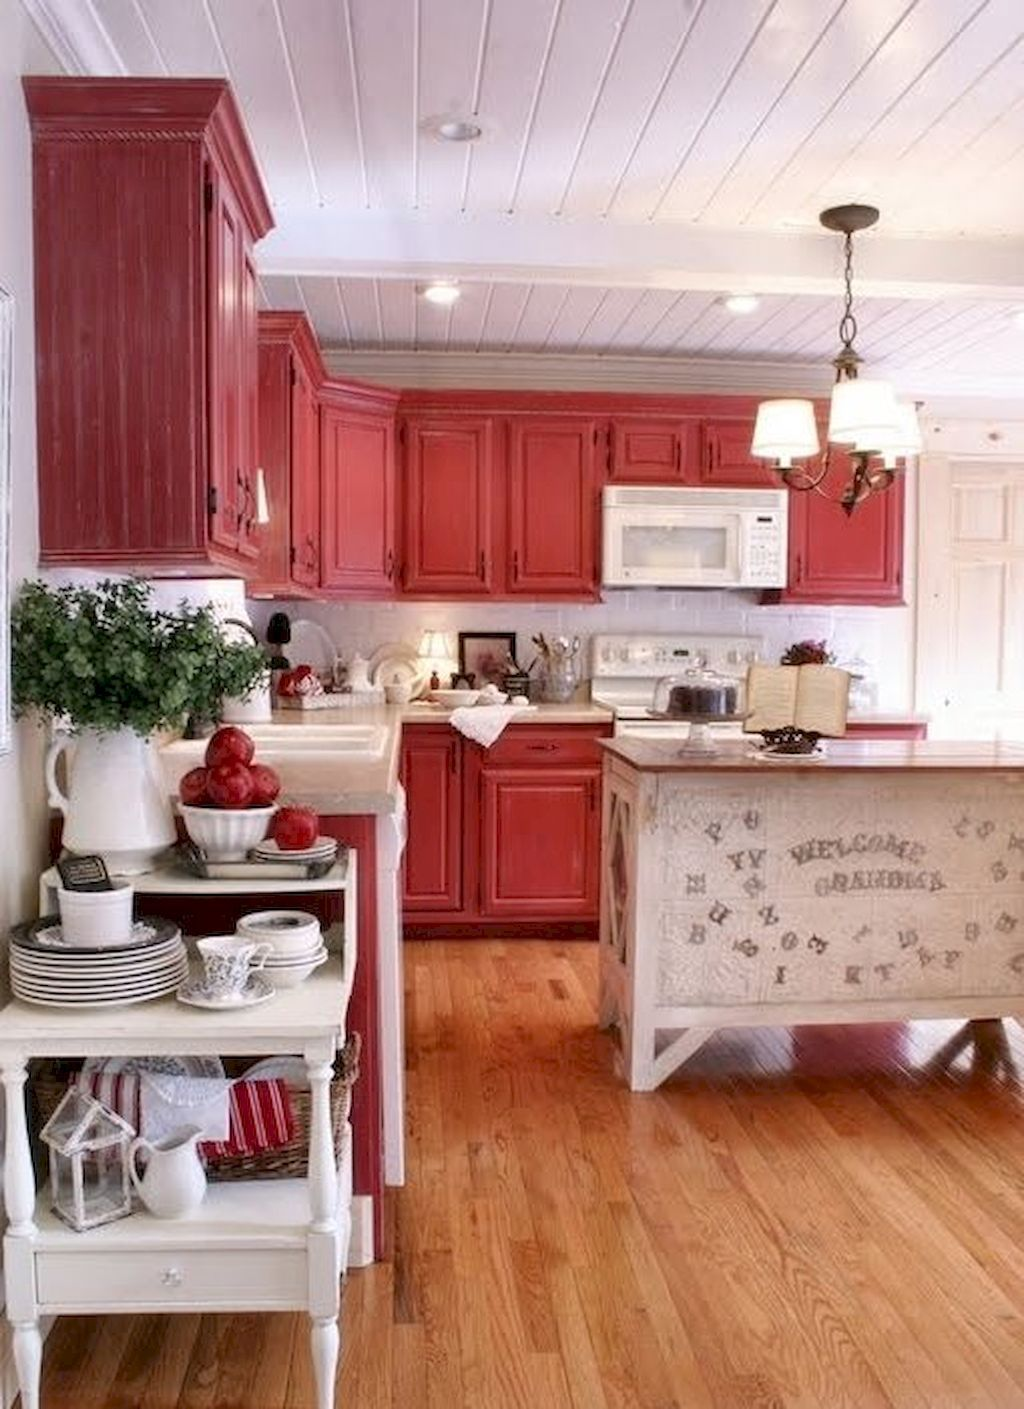 90 rustic kitchen cabinets farmhouse style ideas (89